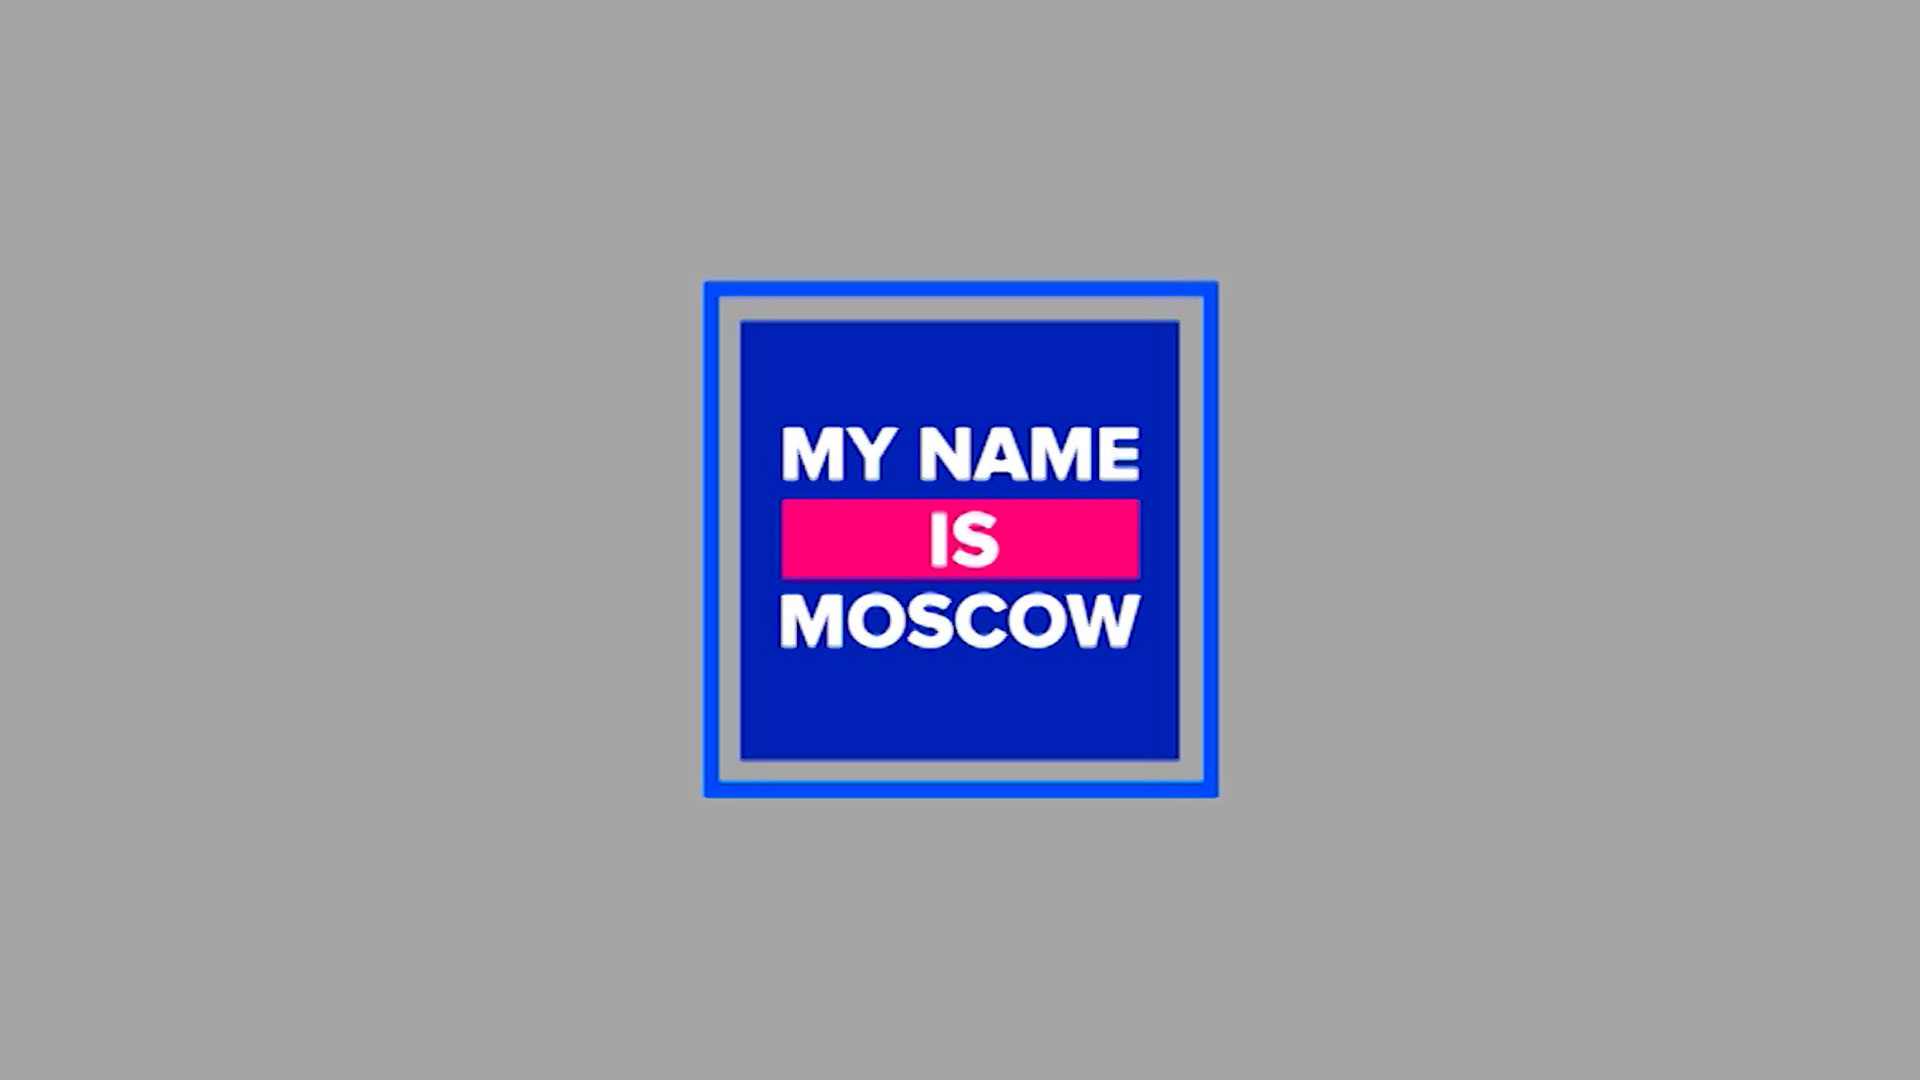 My name is Moscow